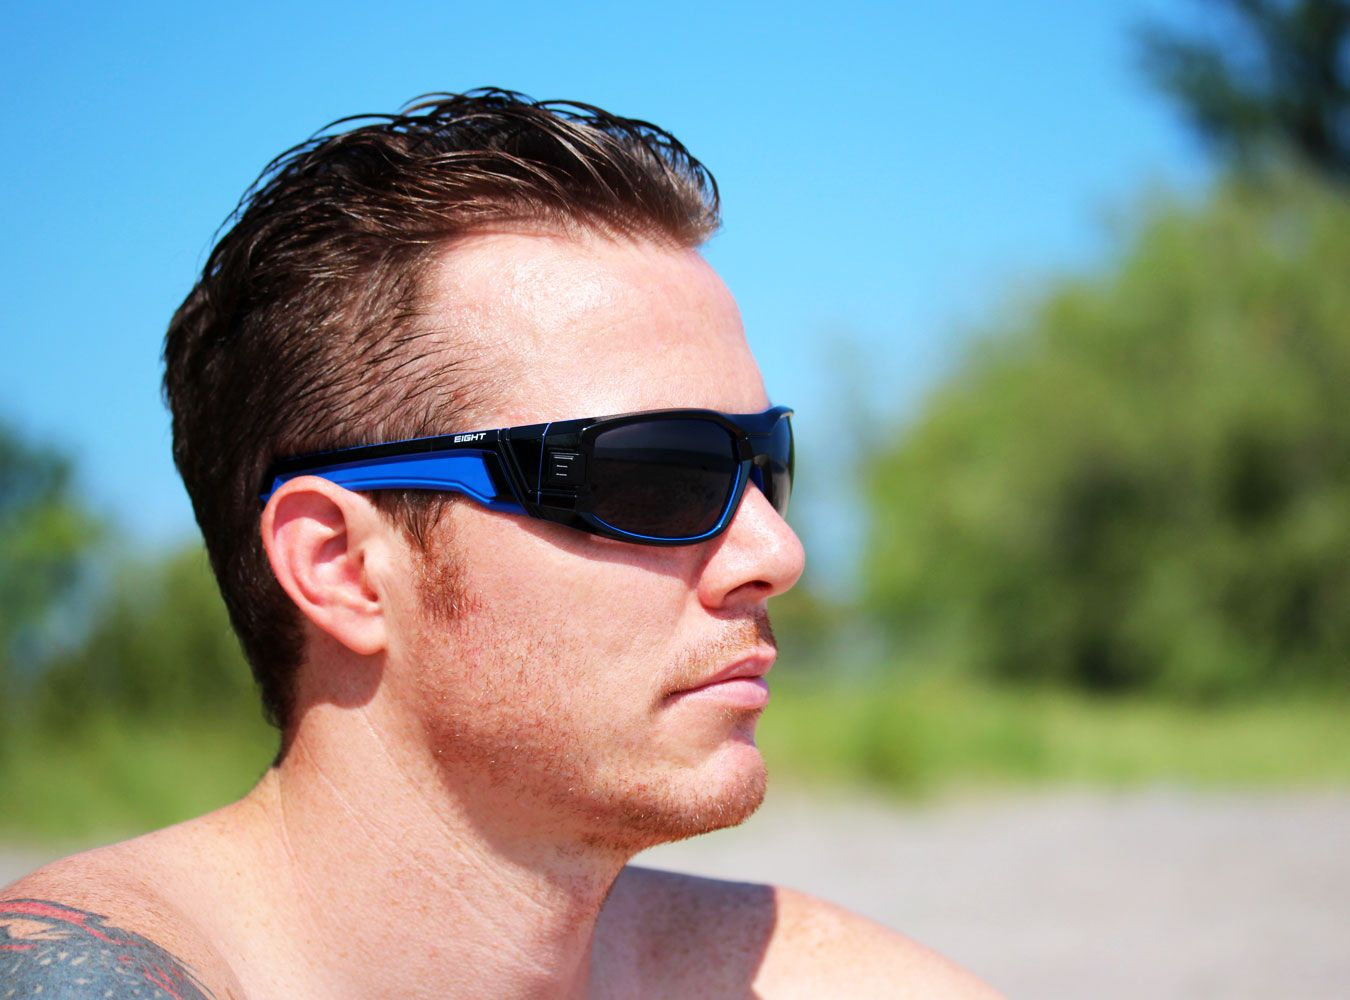 67bdbd91f2 Glossy Black Blue V.1 from EIGHT Eyewear WWW.IWEAR8.COM  8eyewear   sunglasses  shades  cool  mensfashion  fashion  style  summer  eight   sports  design ...